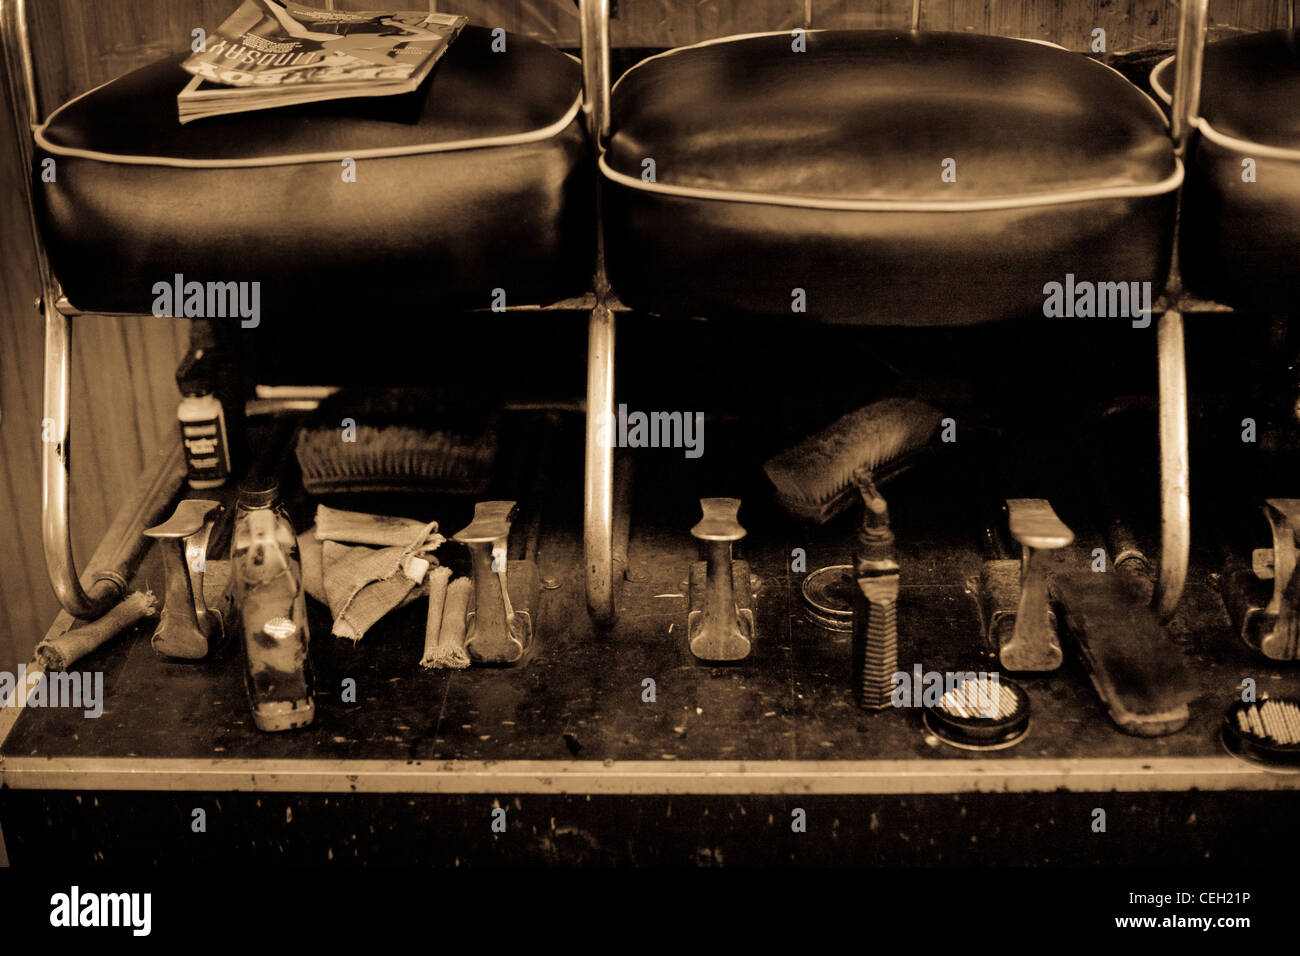 Interior of shoe shine store with leather seats - Stock Image